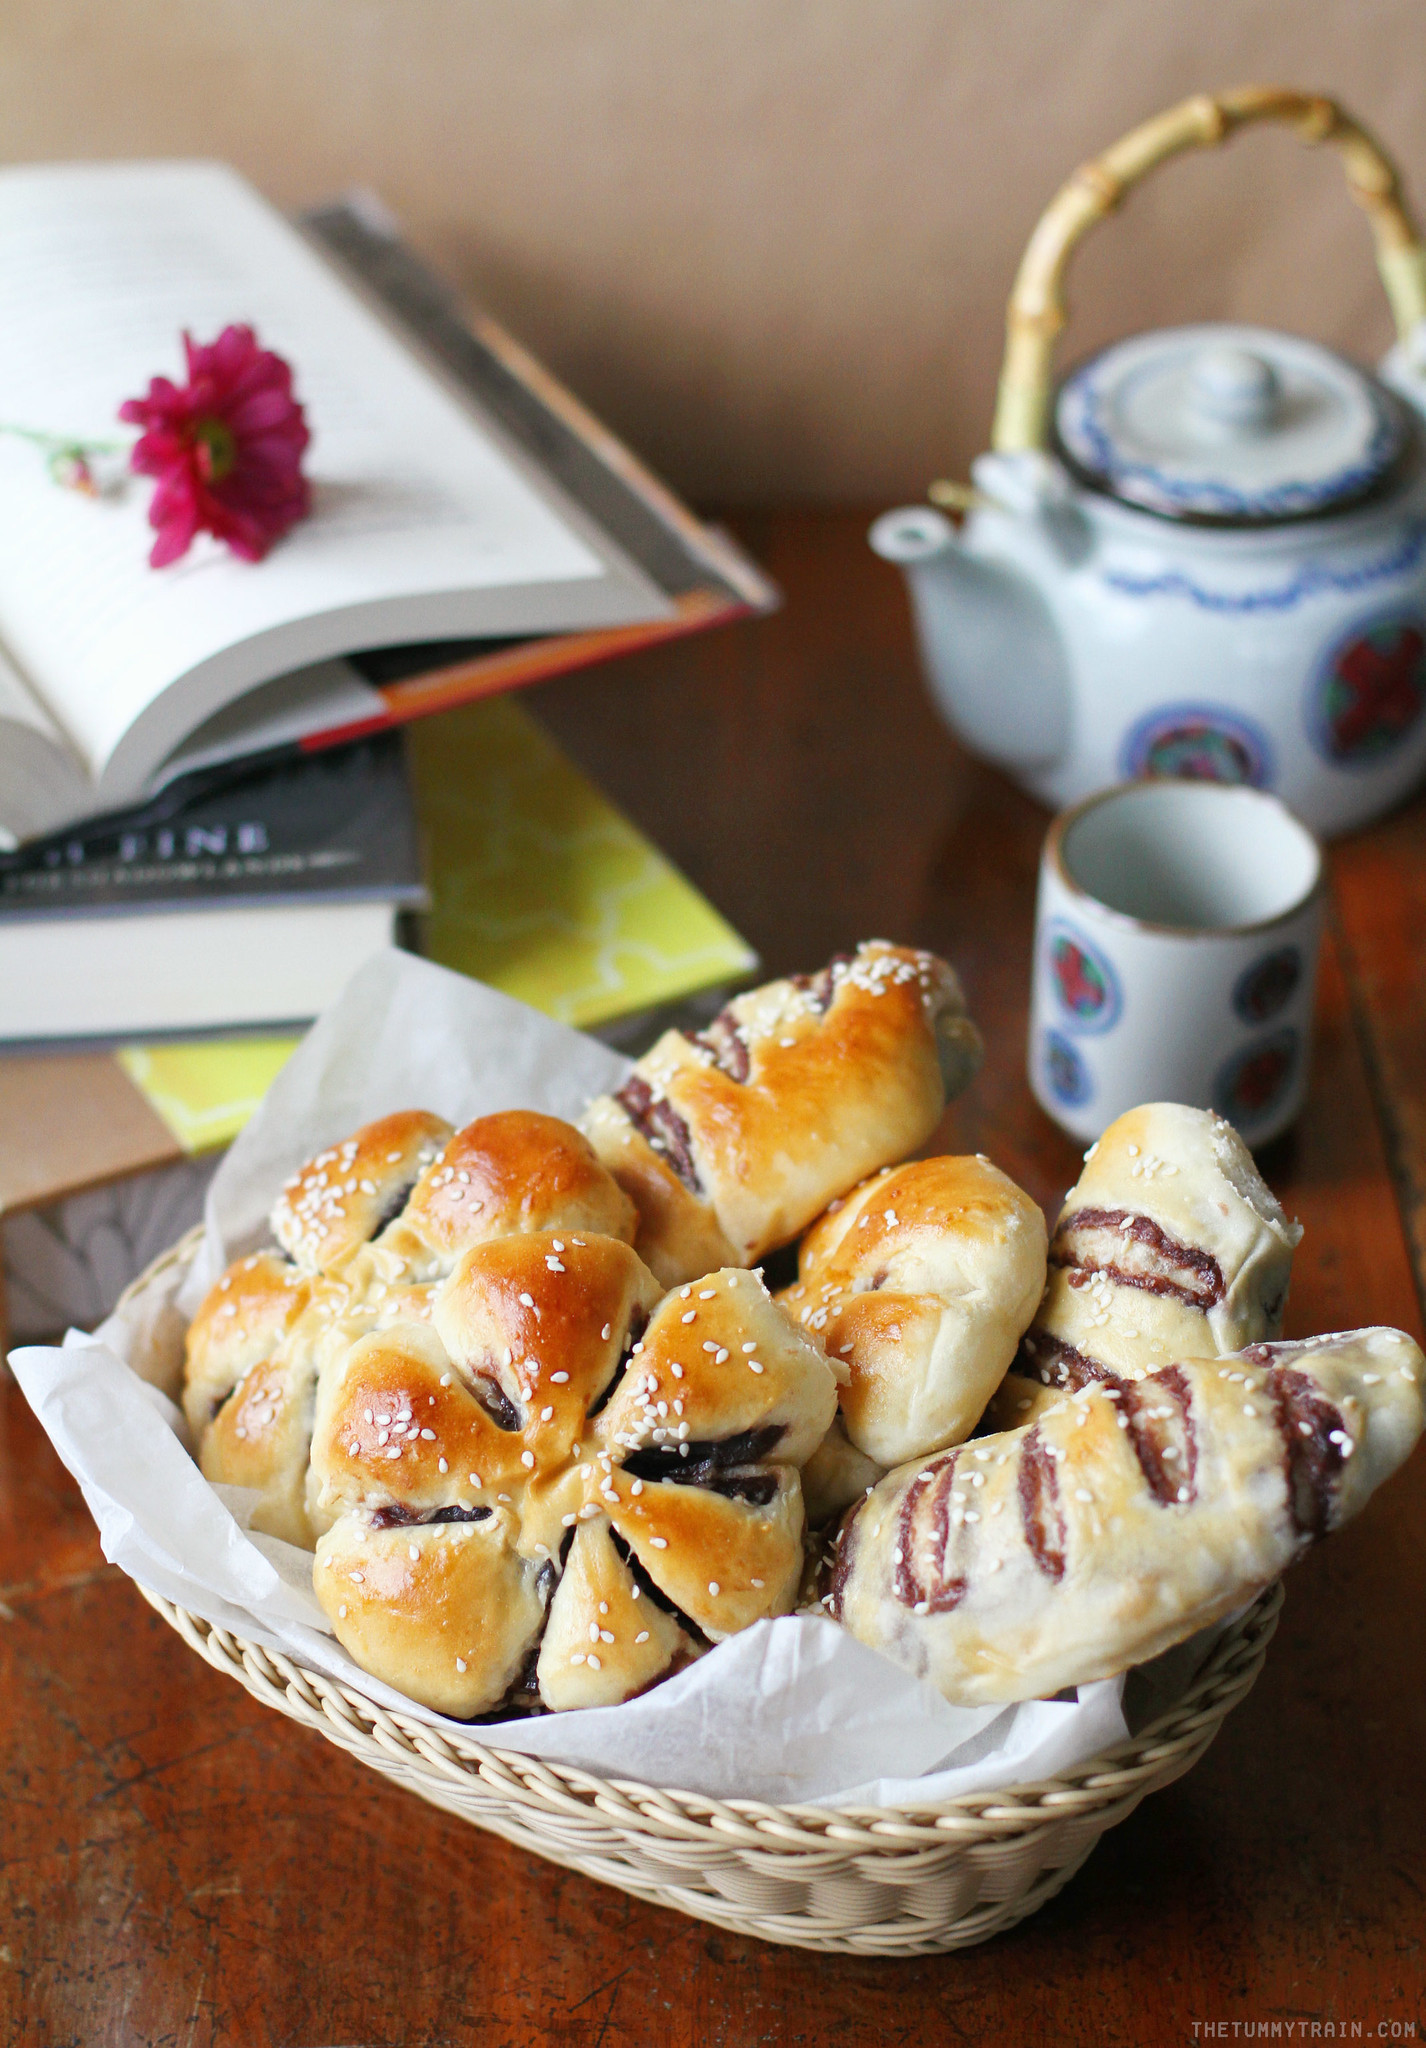 33600226572 b70dd4273a k - The surprising charms of Asian Red Bean Bread